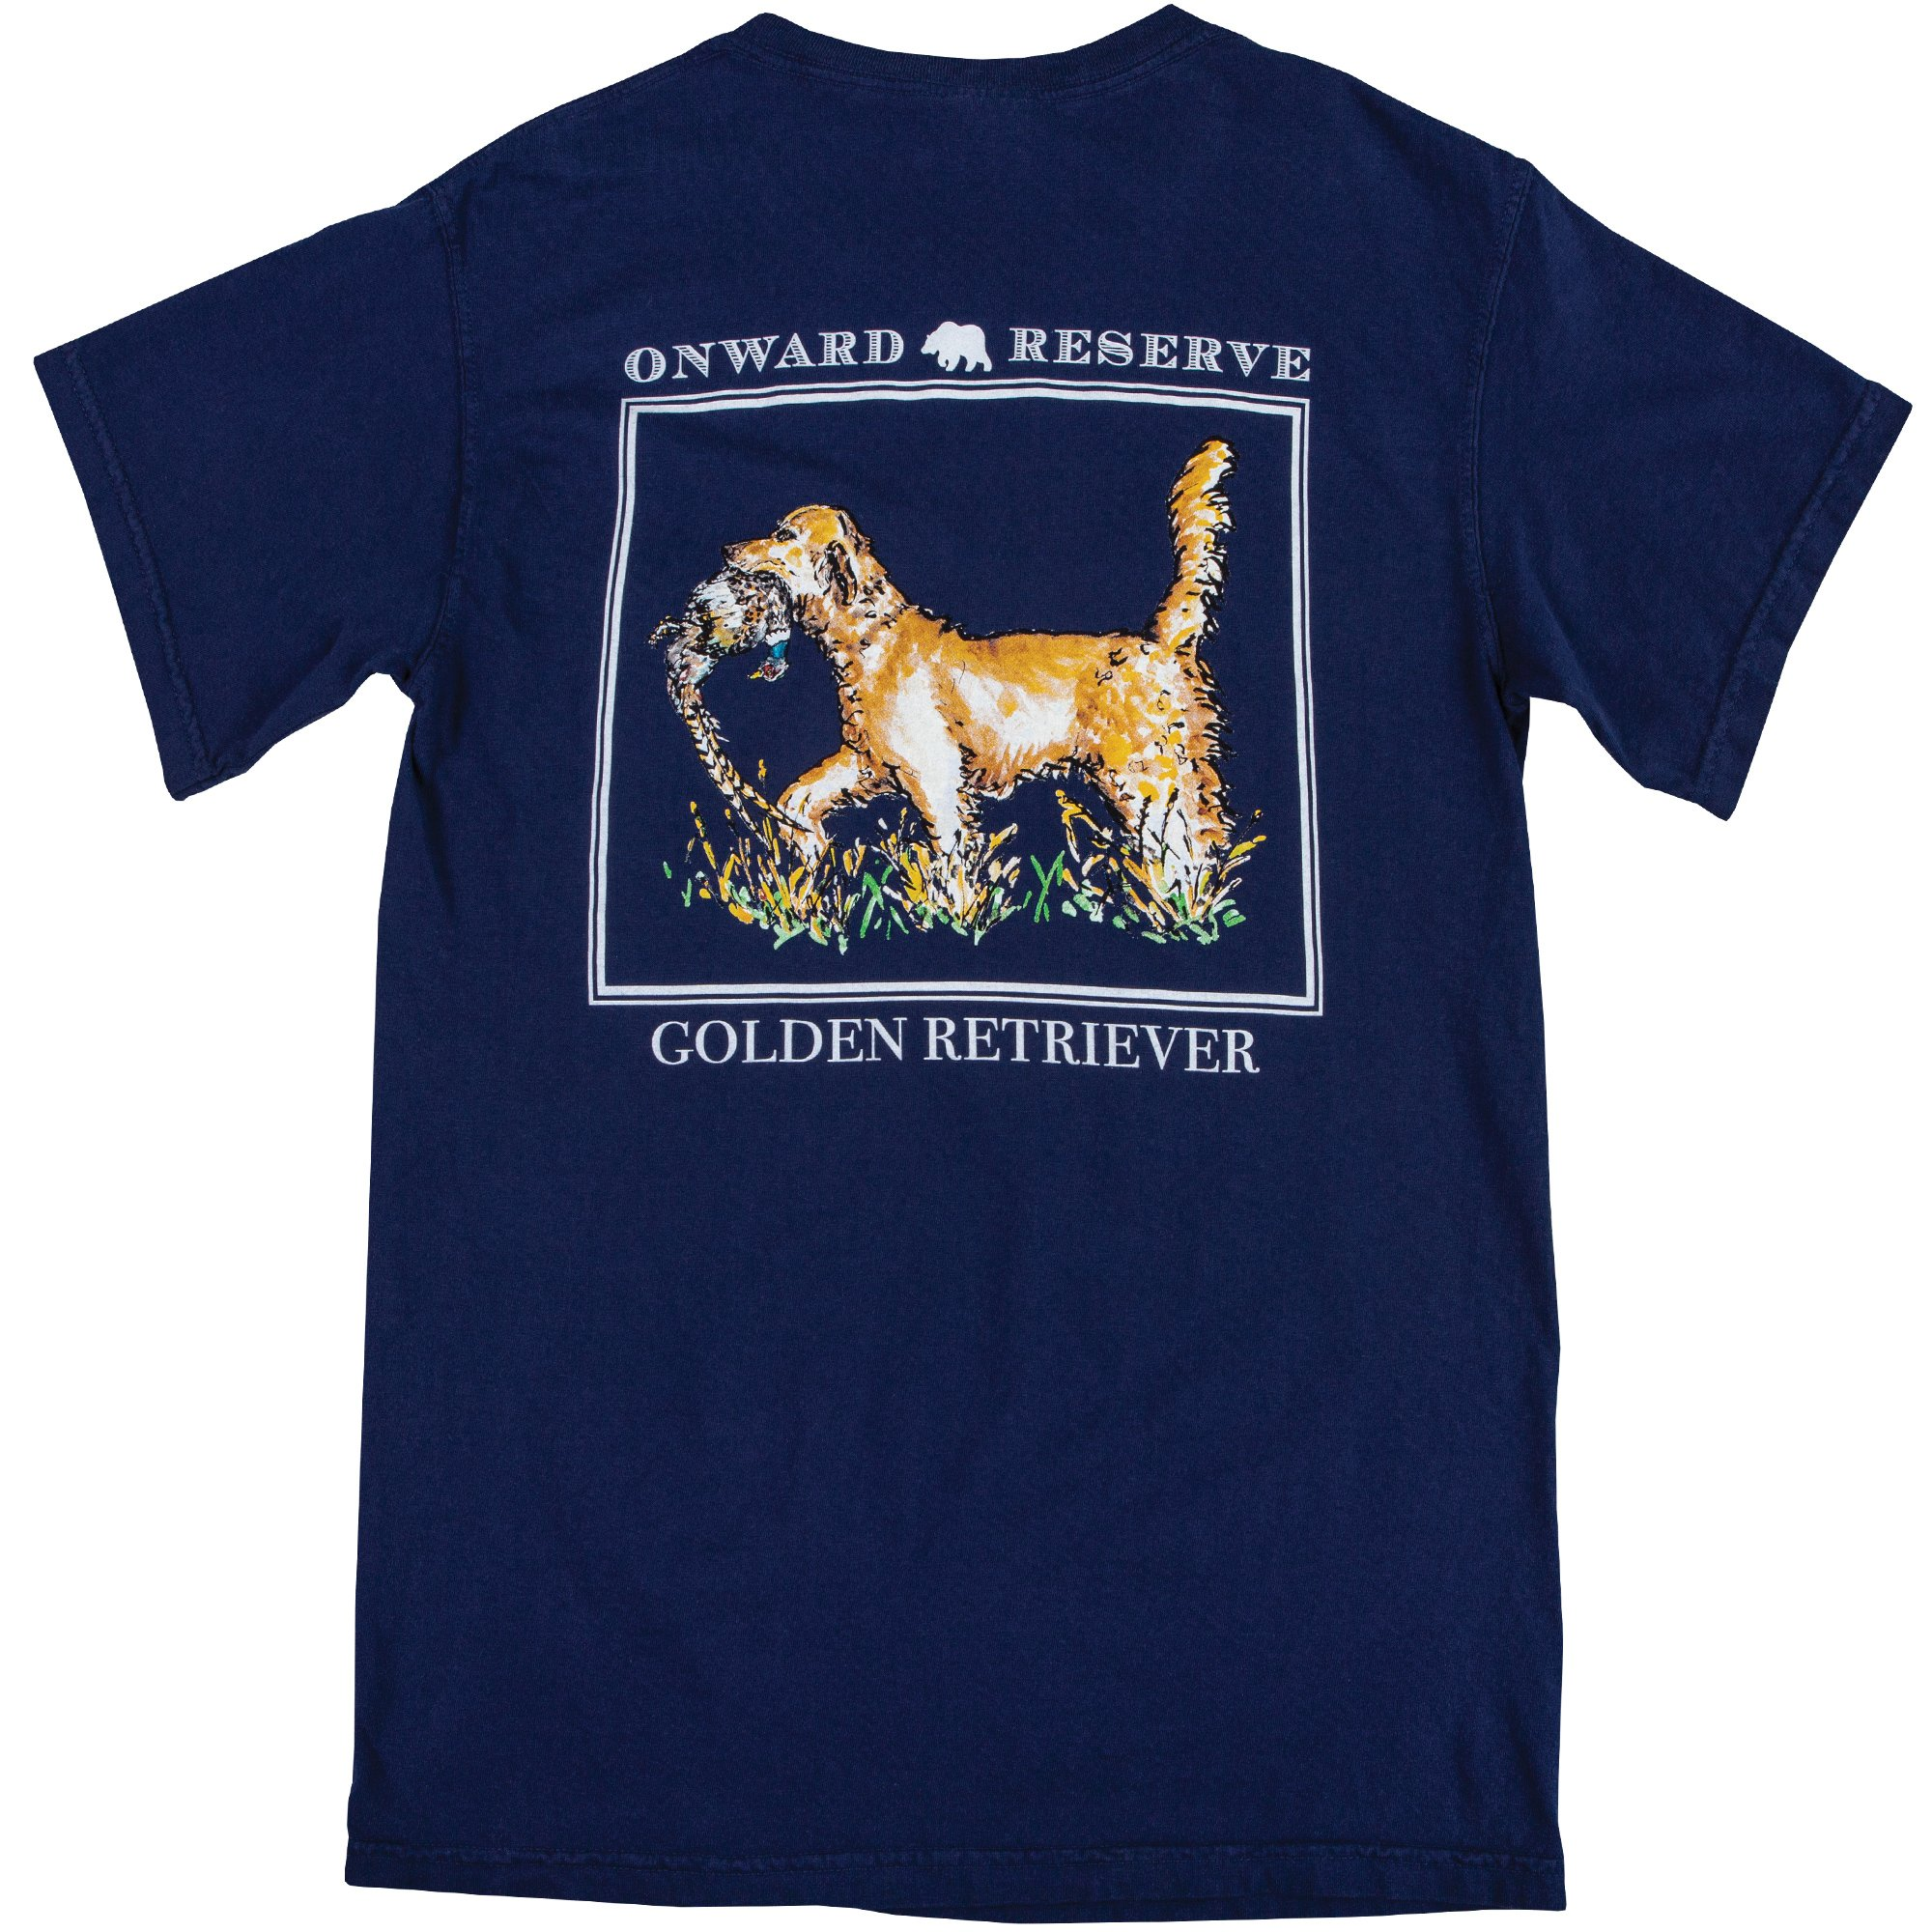 OR-Jamie-Tee-SS-Golden-Retriever-Navy-Back.jpg